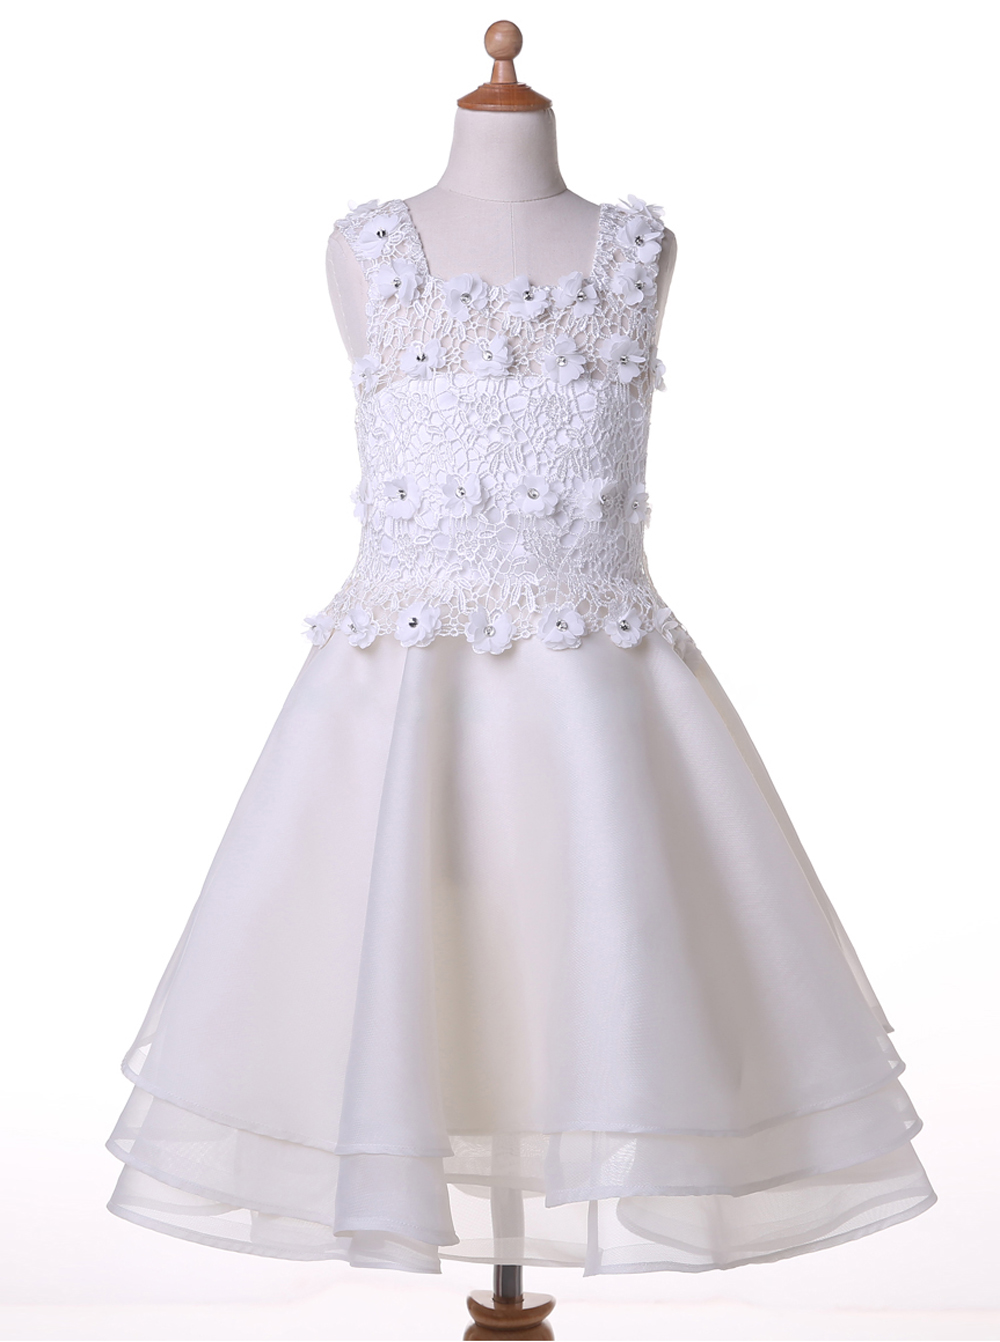 A-line Square Sleeveless Knee-Length White Chiffon Flower Girl Dress with Beading Lace фото